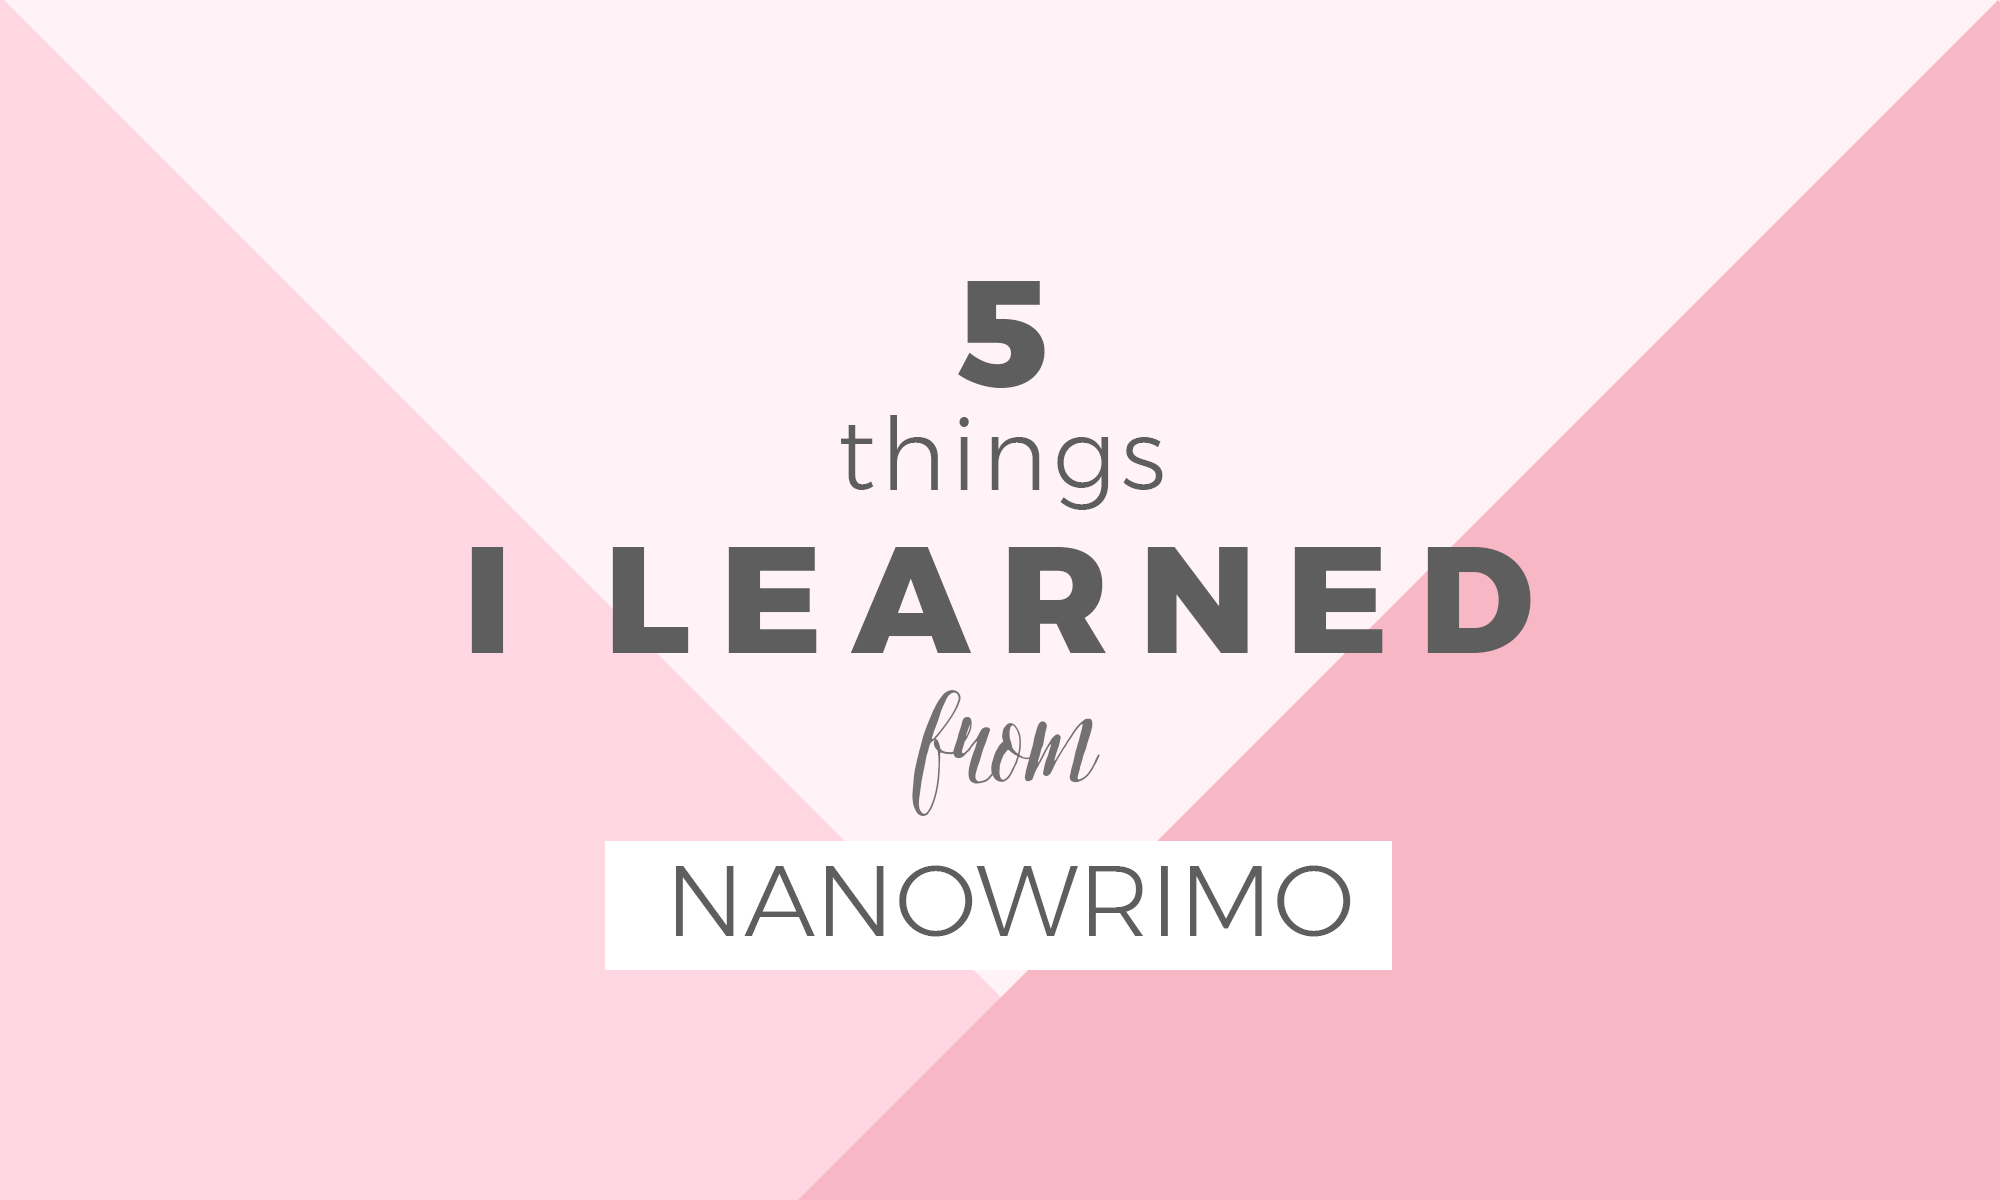 5 things I learned from Nanowrimo